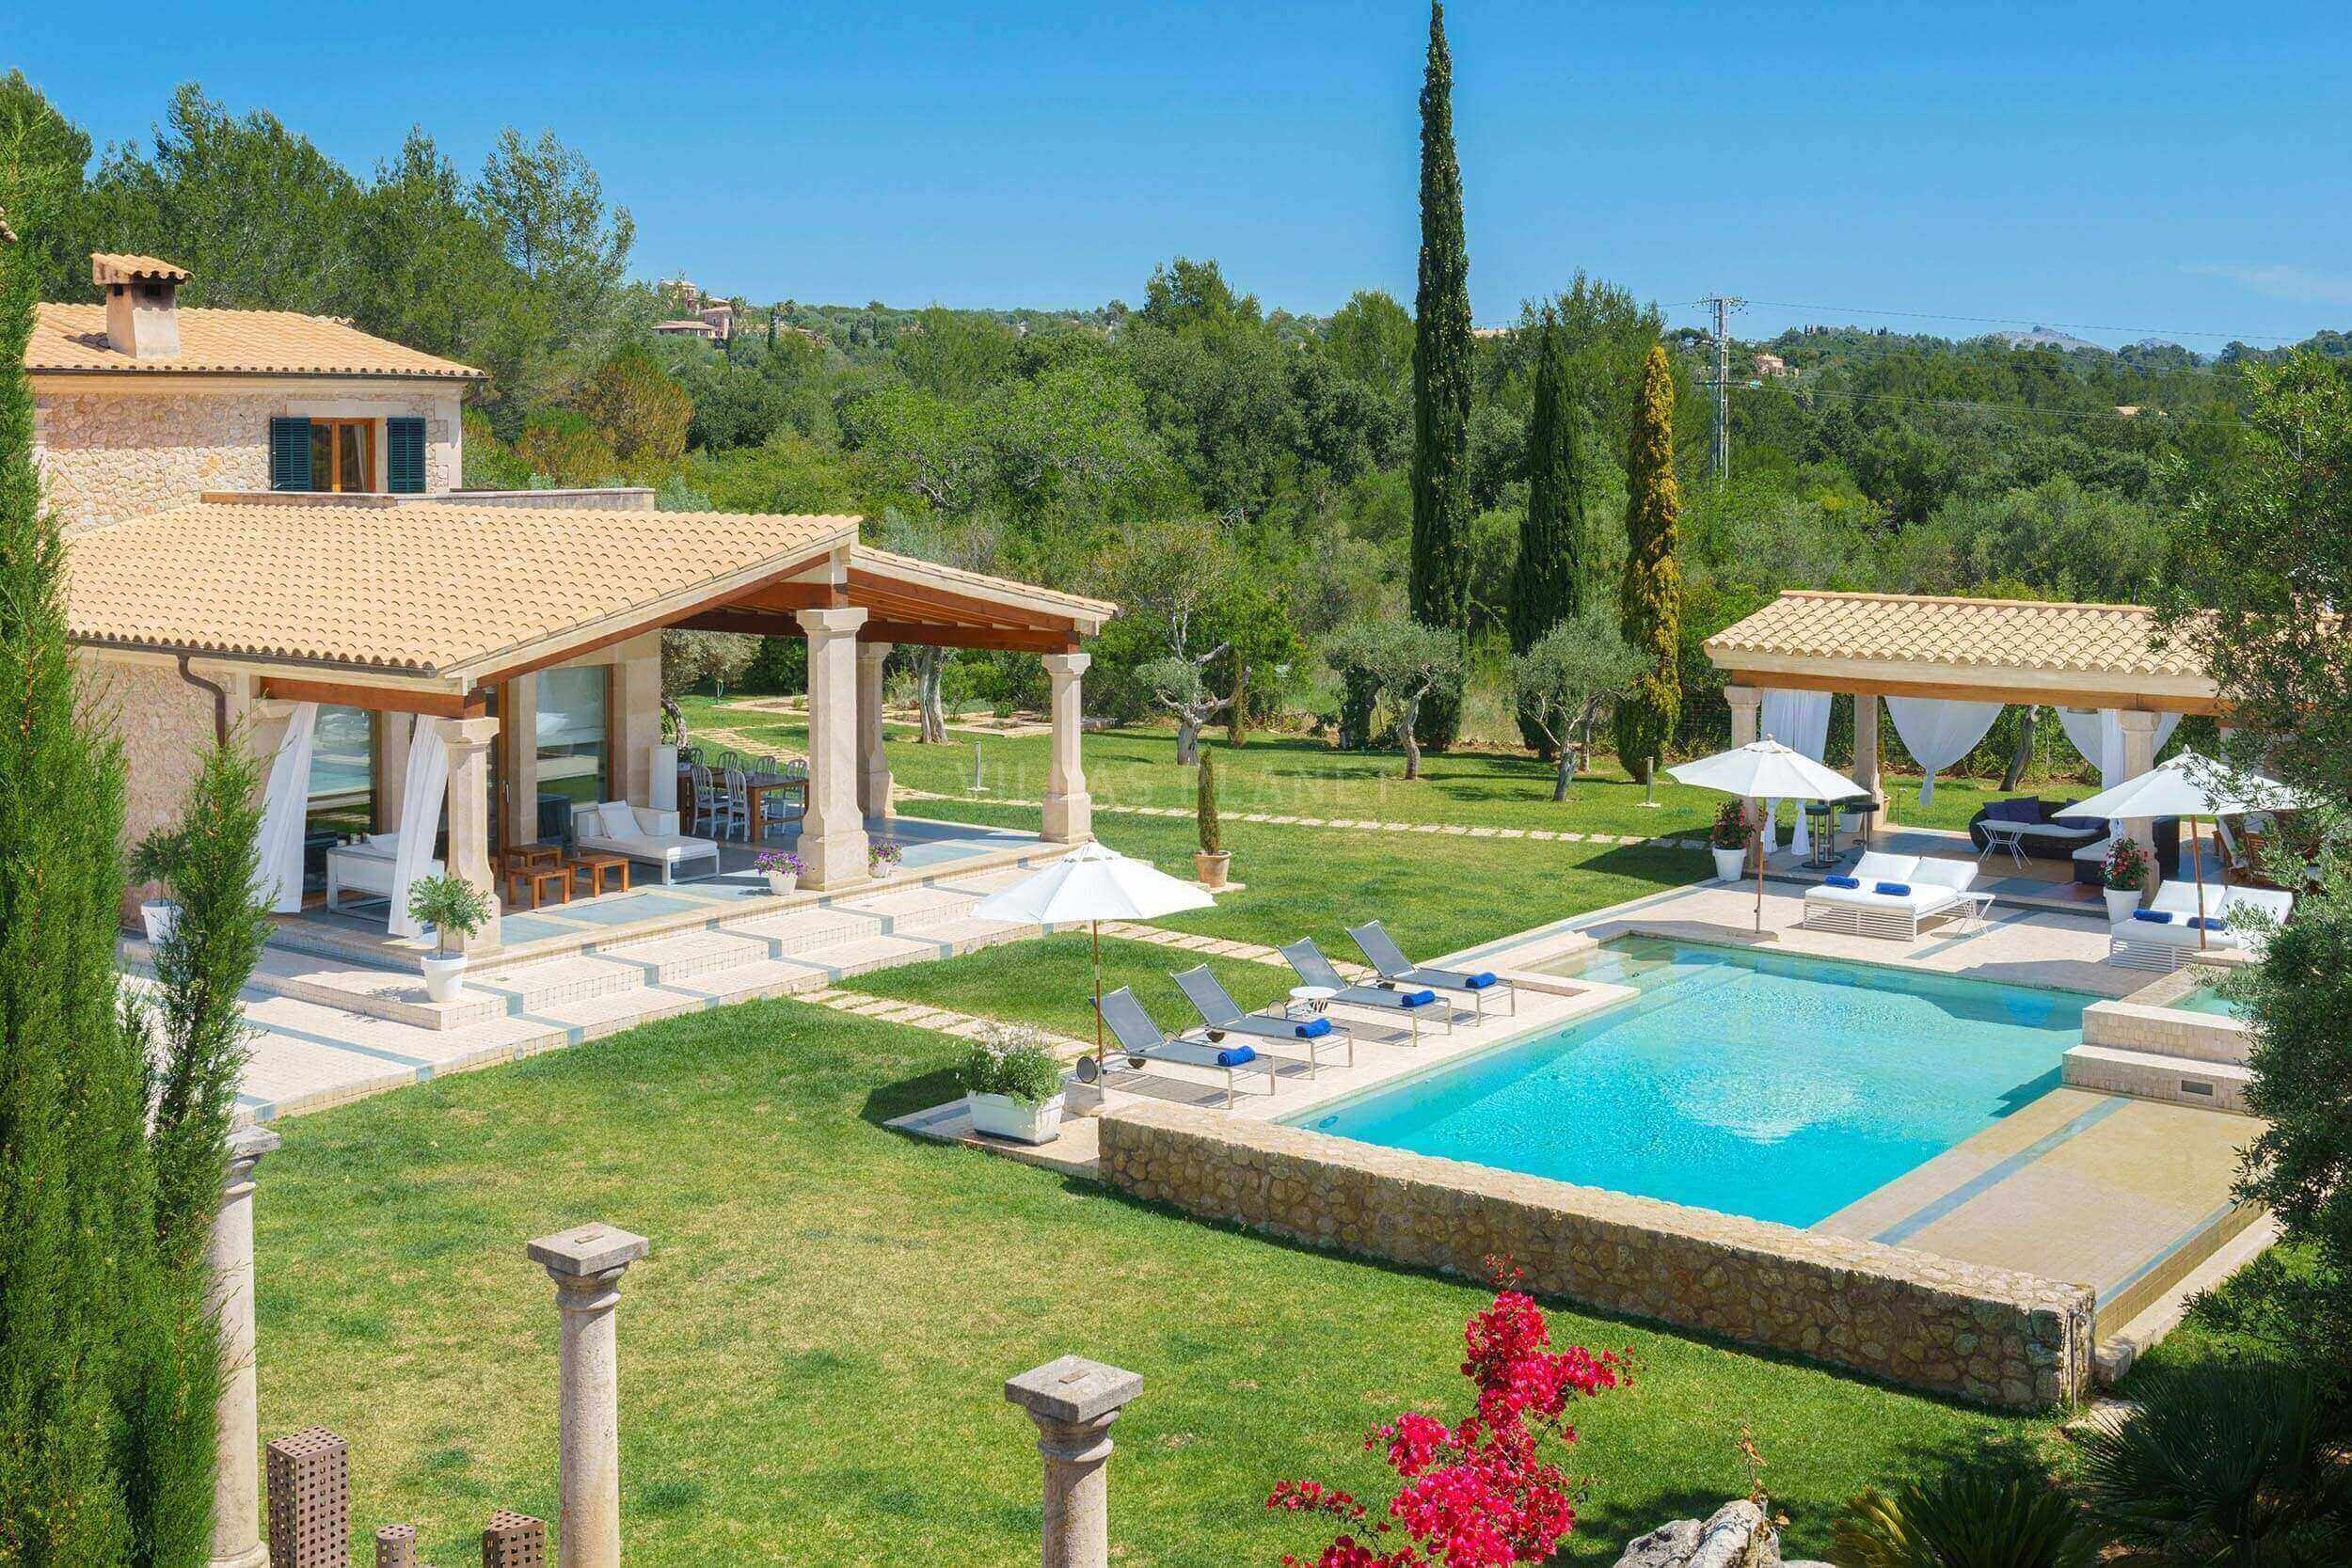 Beautiful luxurious villa in Mallorca that fulfills your wishes